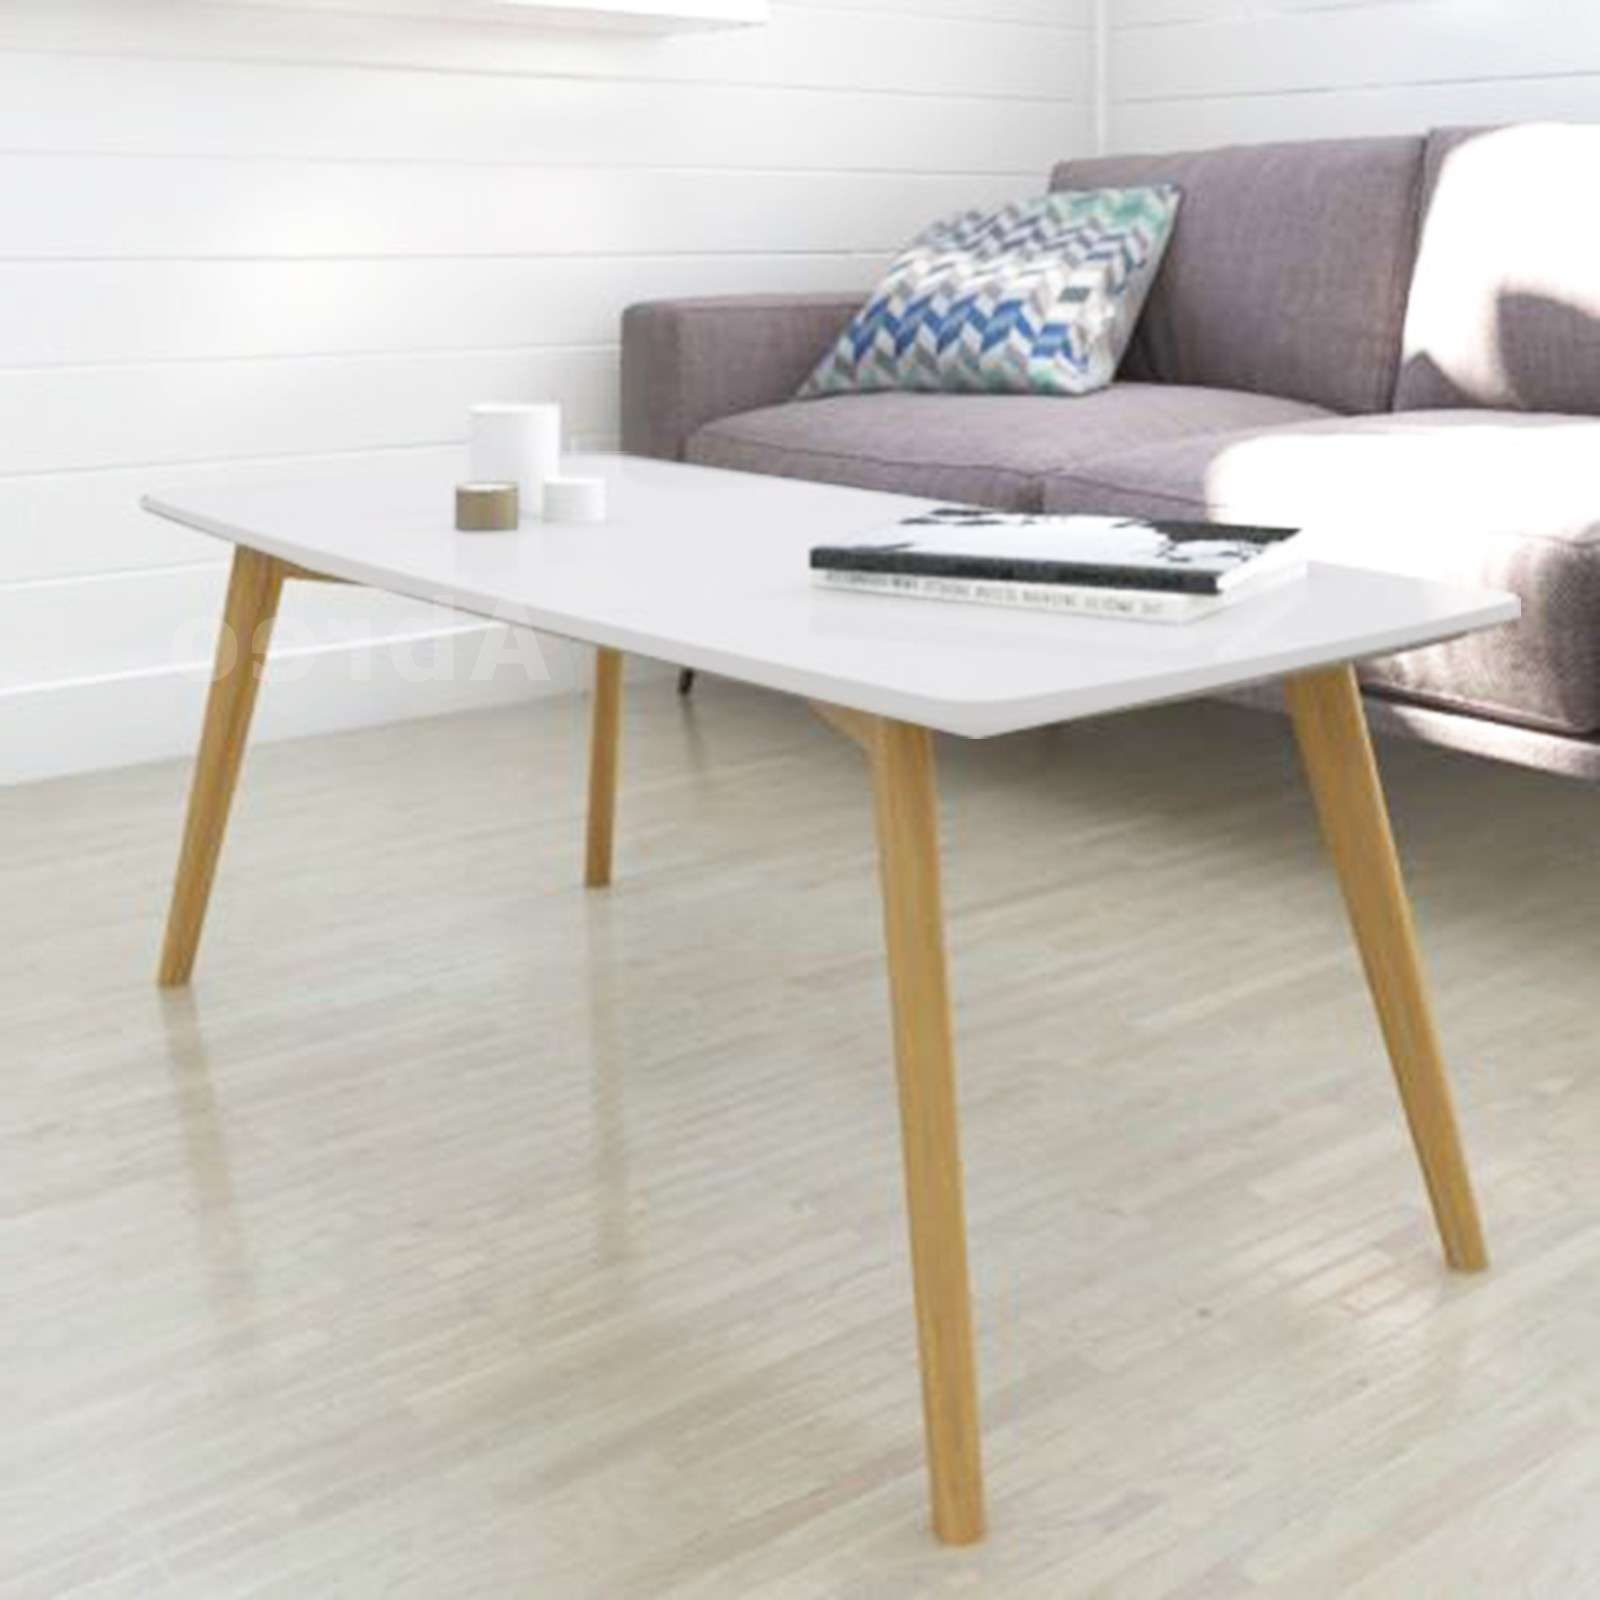 Scandinavian Retro Style Coffee Table Abreo Home Furniture For Latest Retro White Coffee Tables (View 7 of 20)